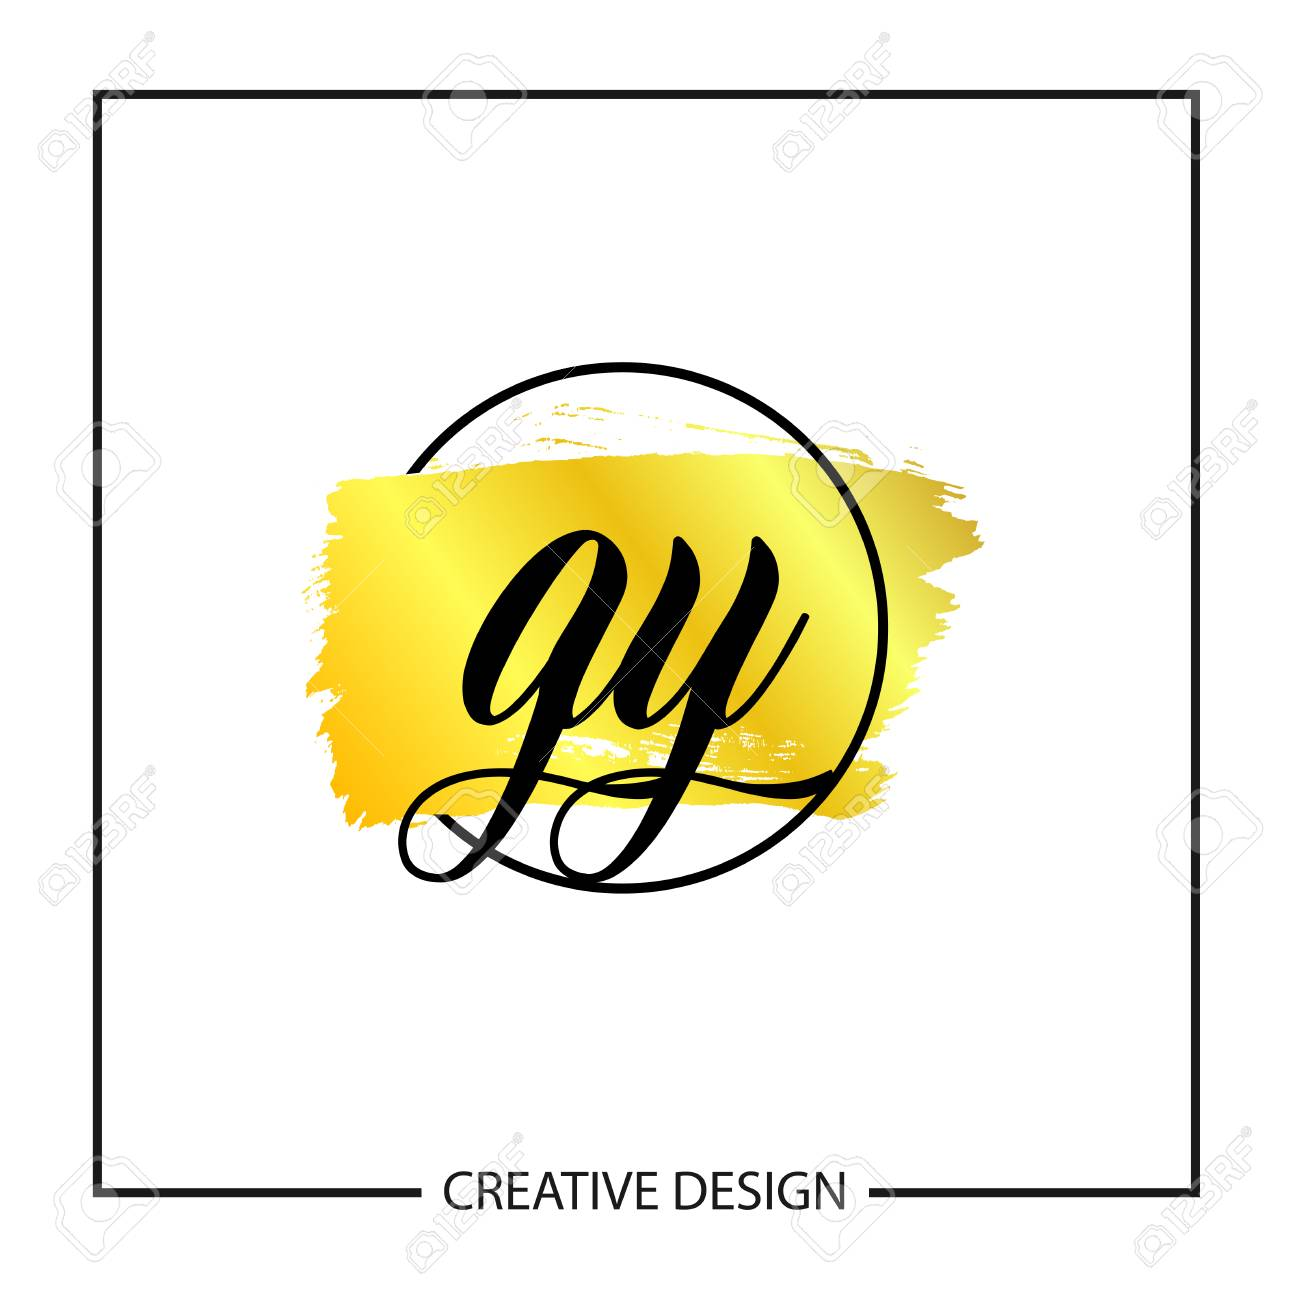 Initial Letter GY Logo Template Design - 112508337